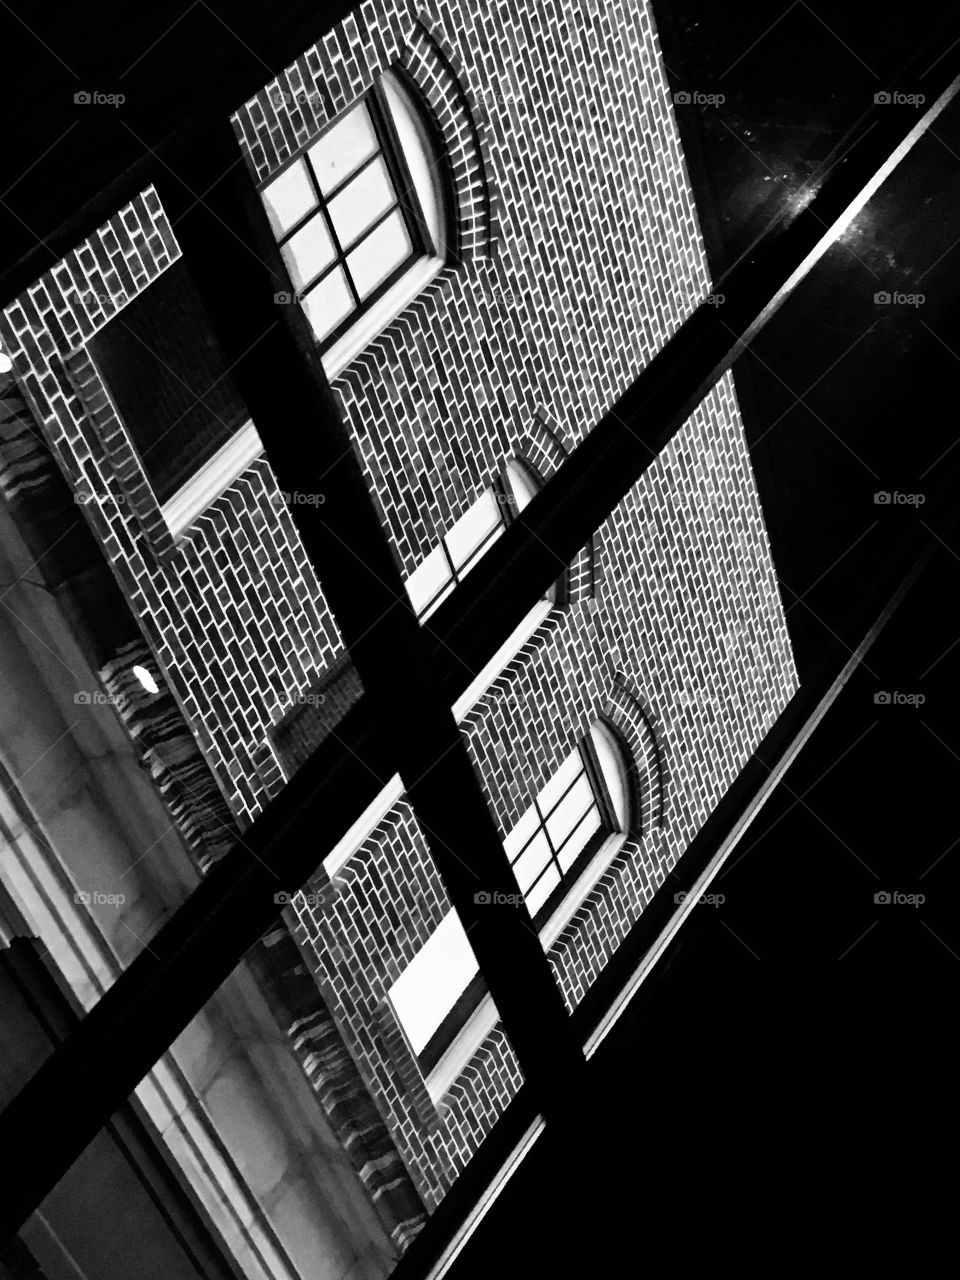 Bricks, windows and lines in black and white